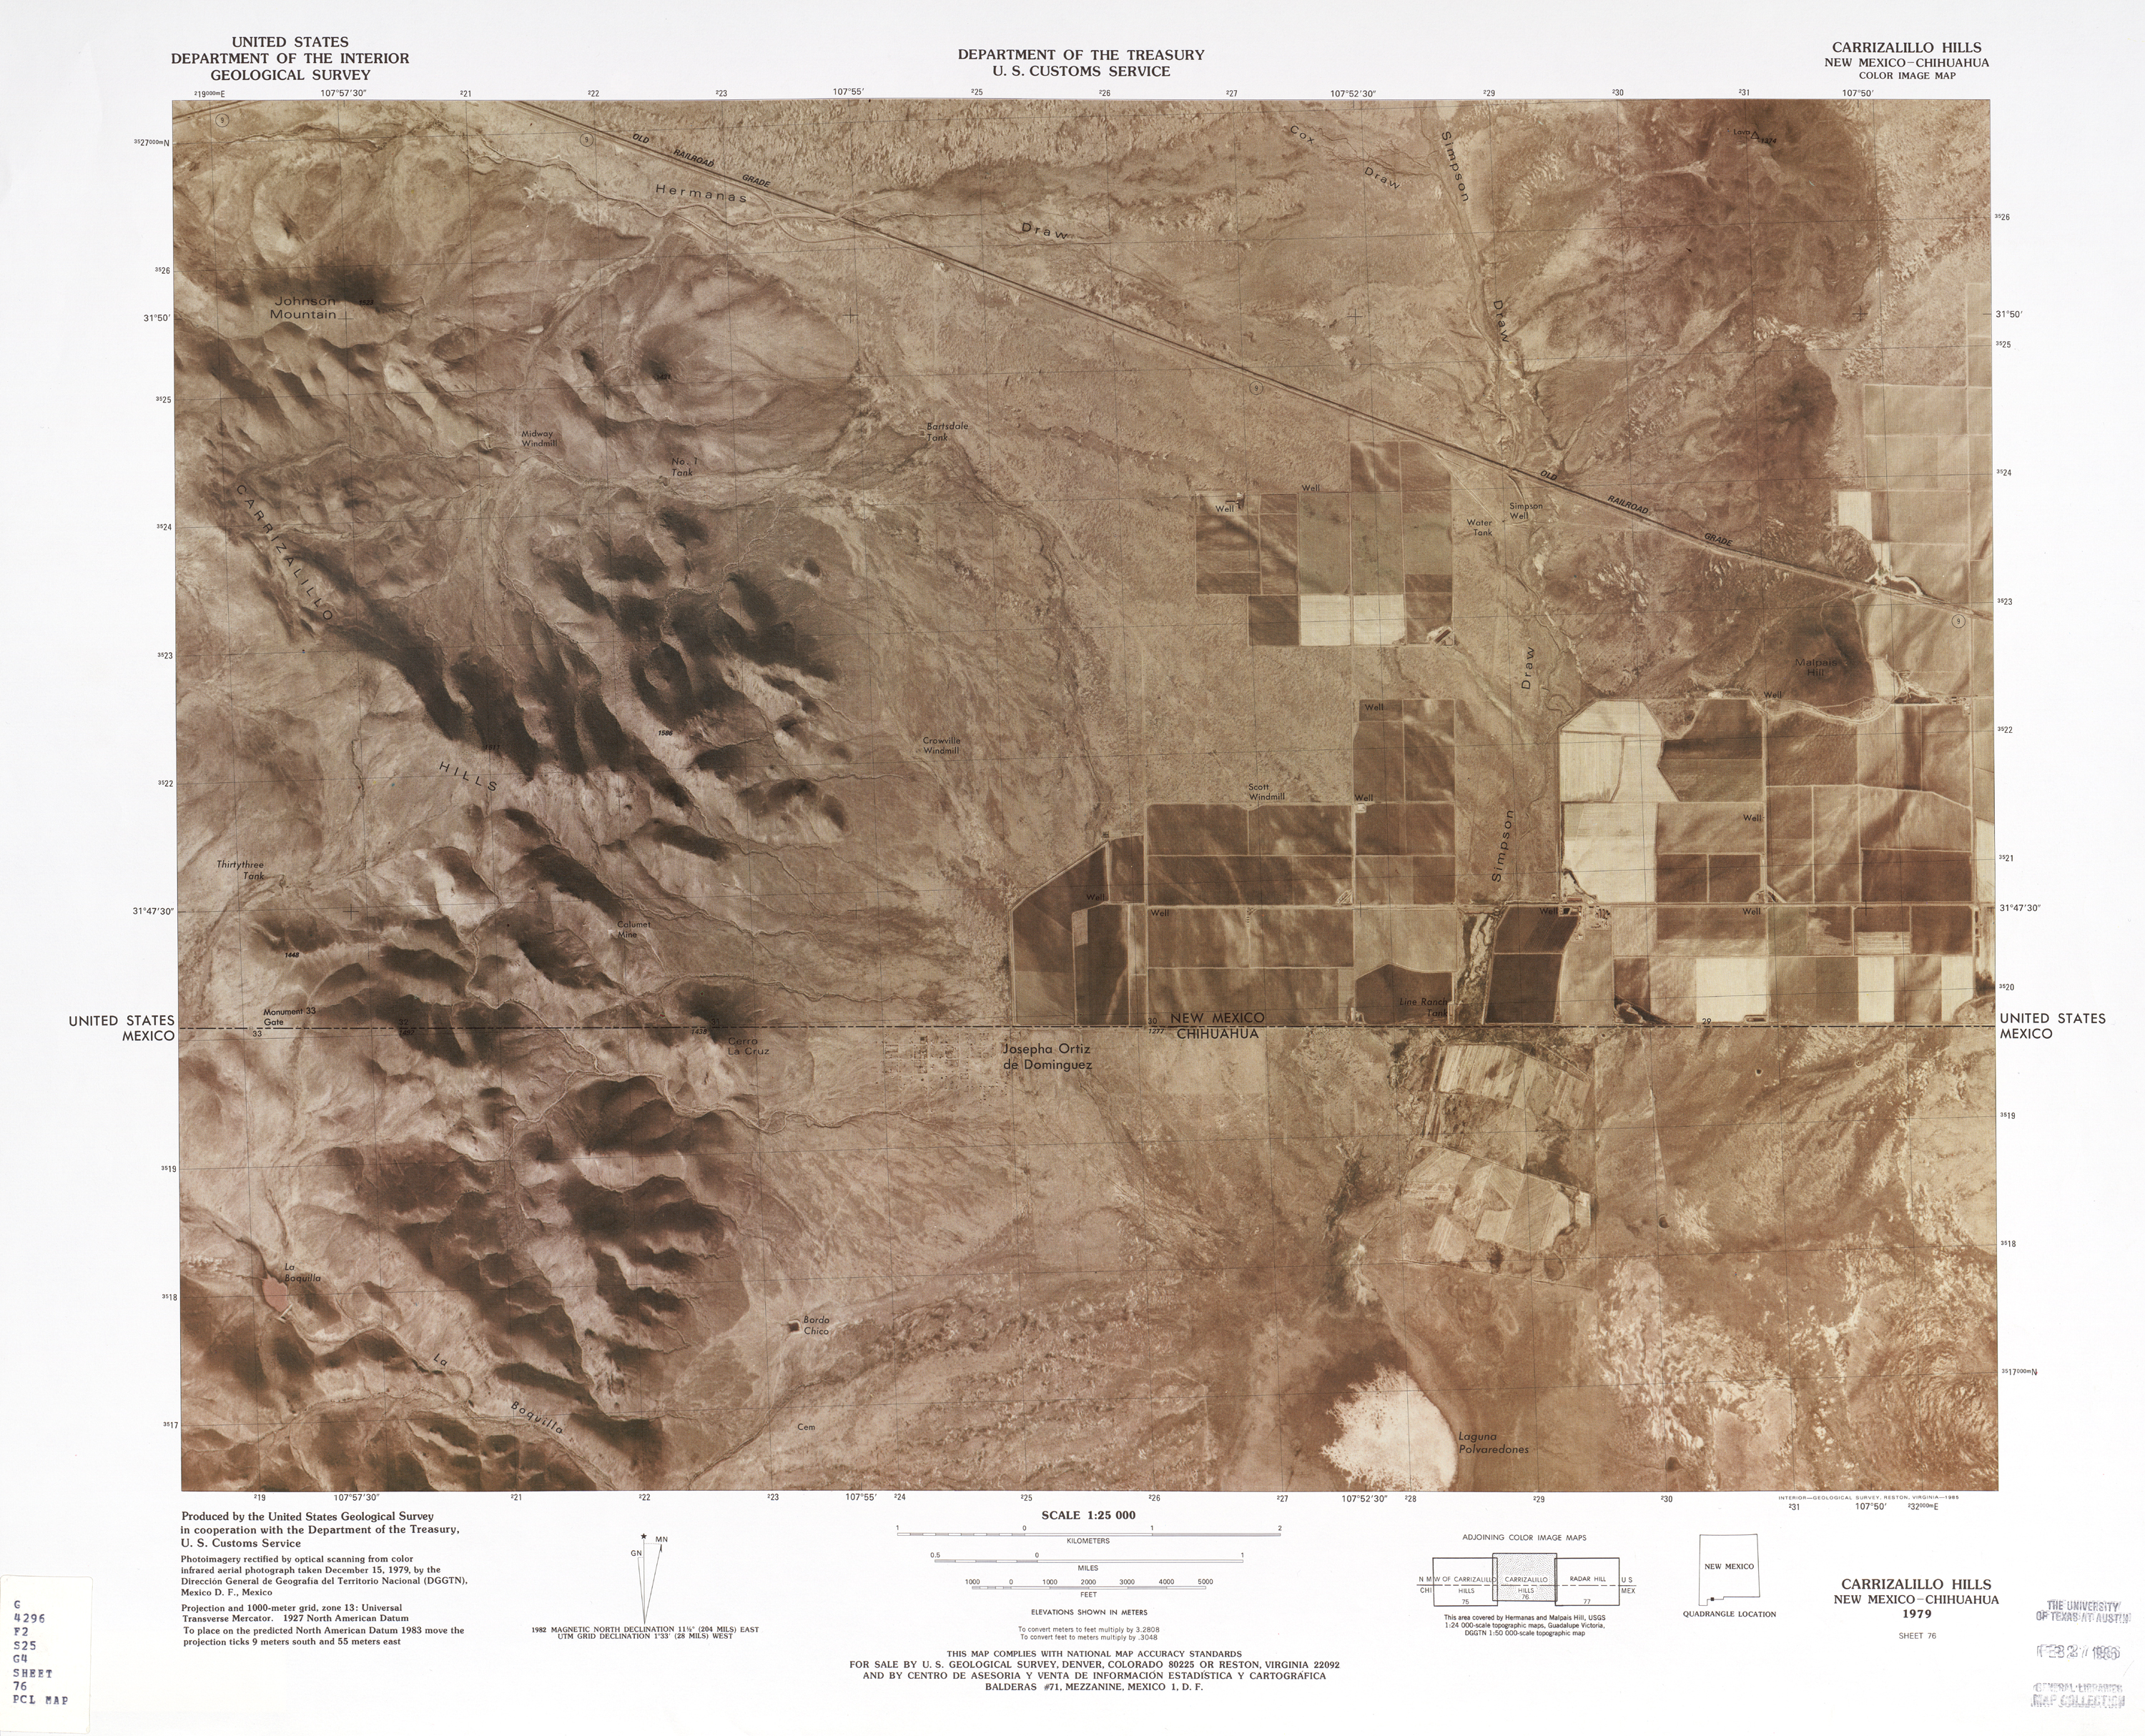 United States-Mexico Border Map, Carrizalillo Hills